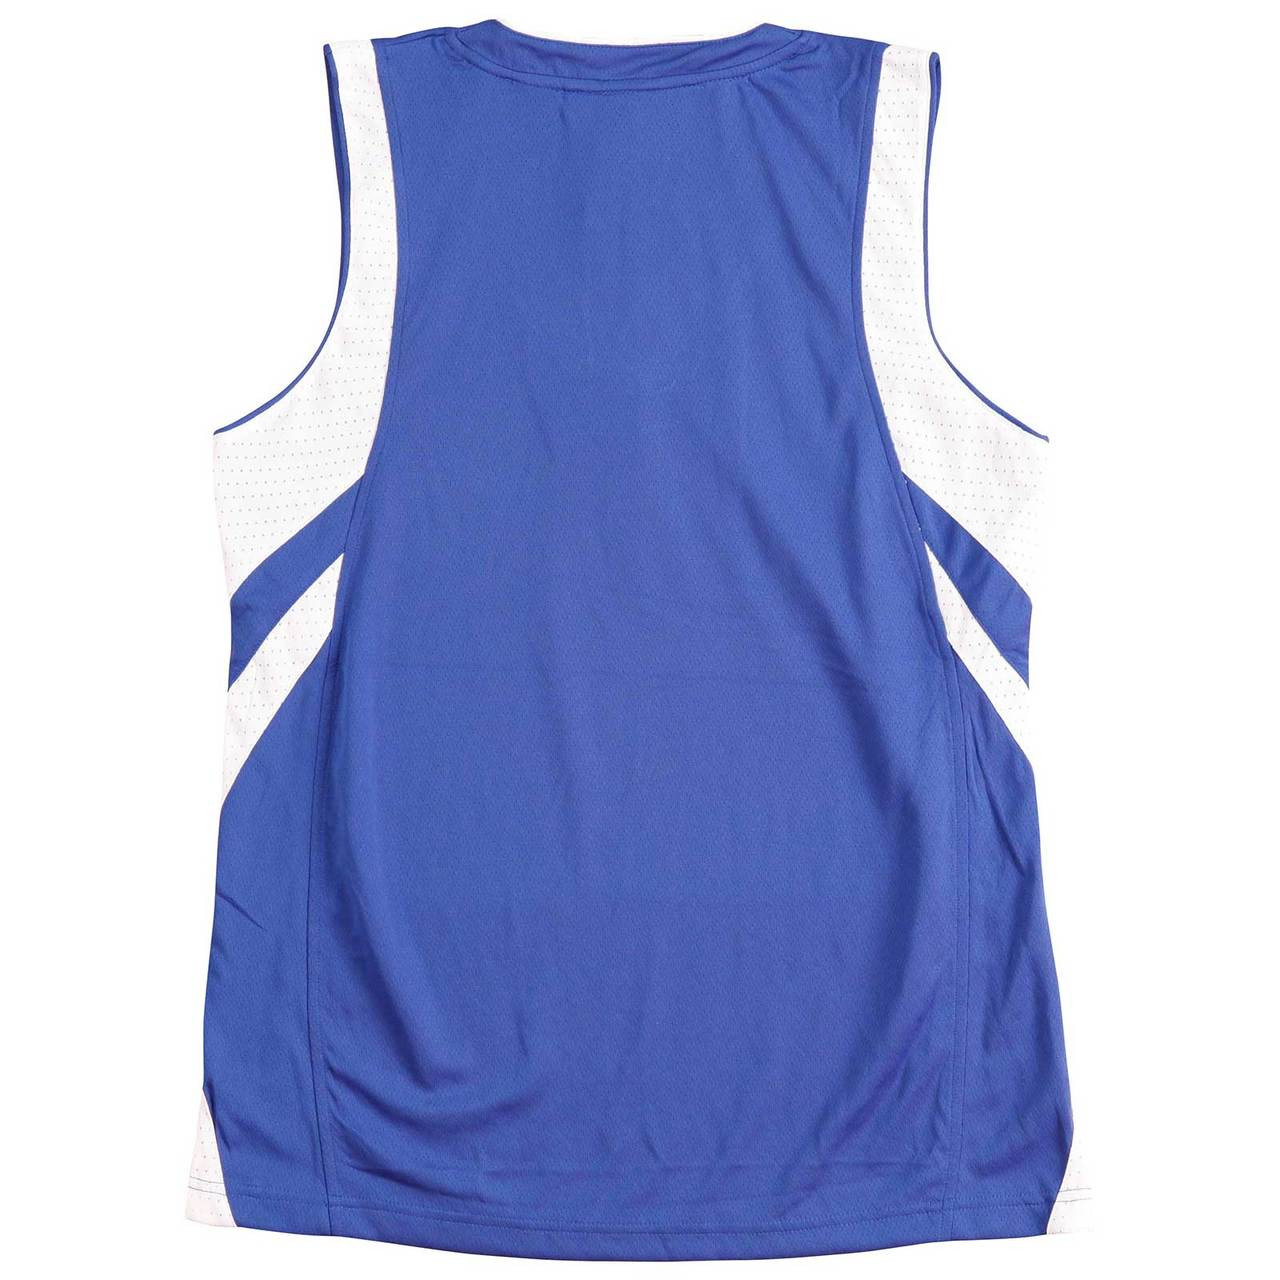 ba956121fa6 Click to zoom in. Click to zoom in. Adult Basketball uniform singlets Online